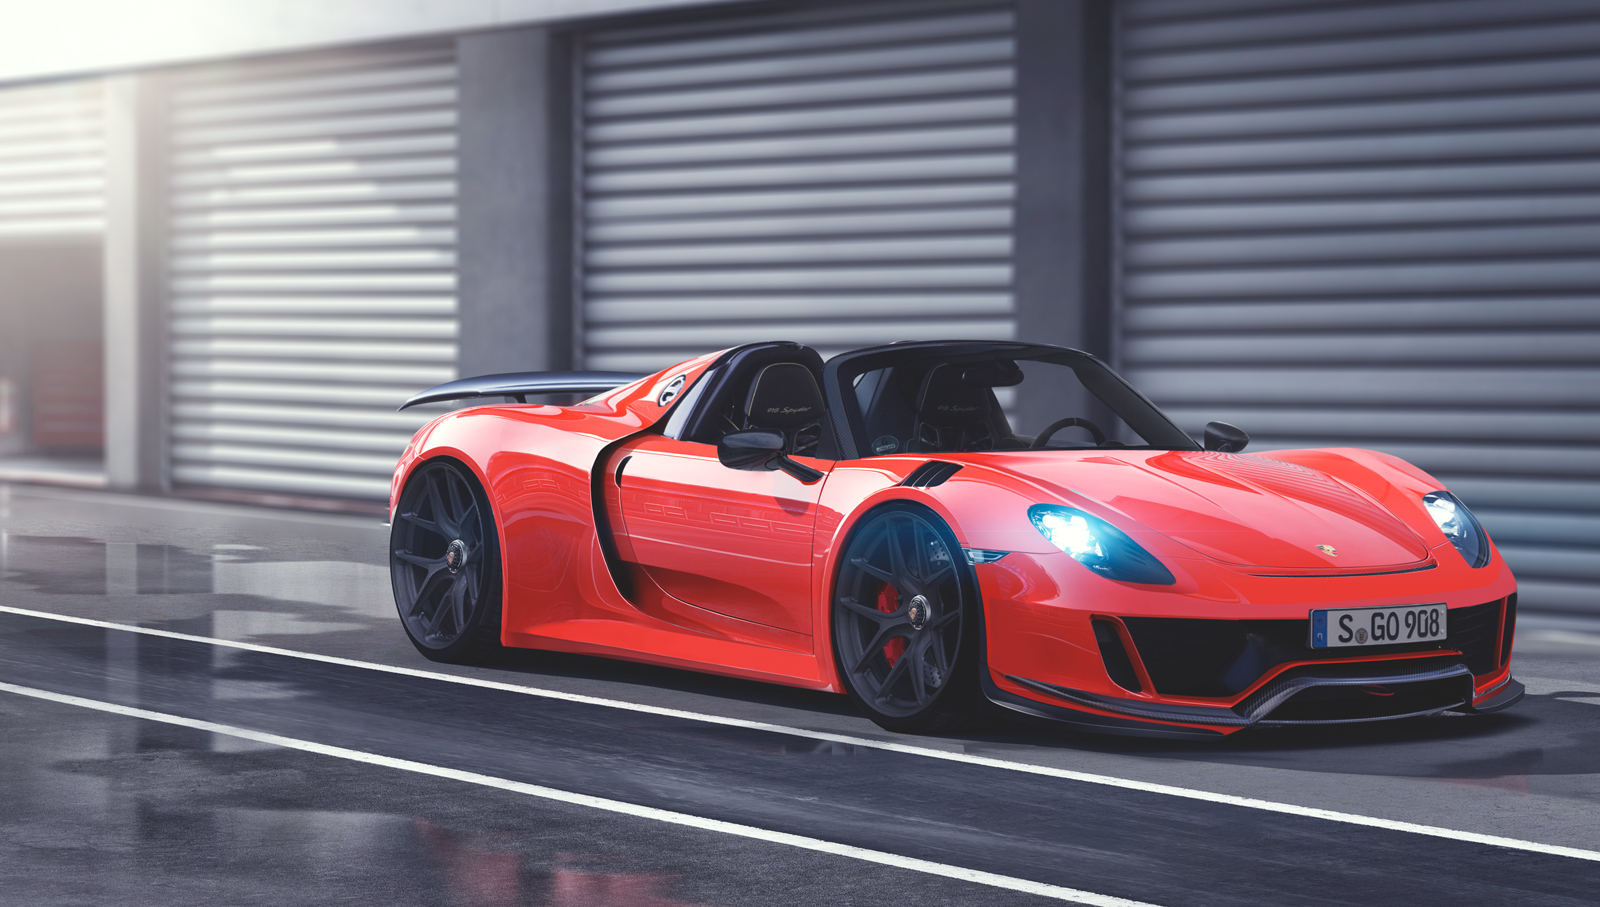 Porsche 918 Spyder 2016 By Marko0811 On Deviantart